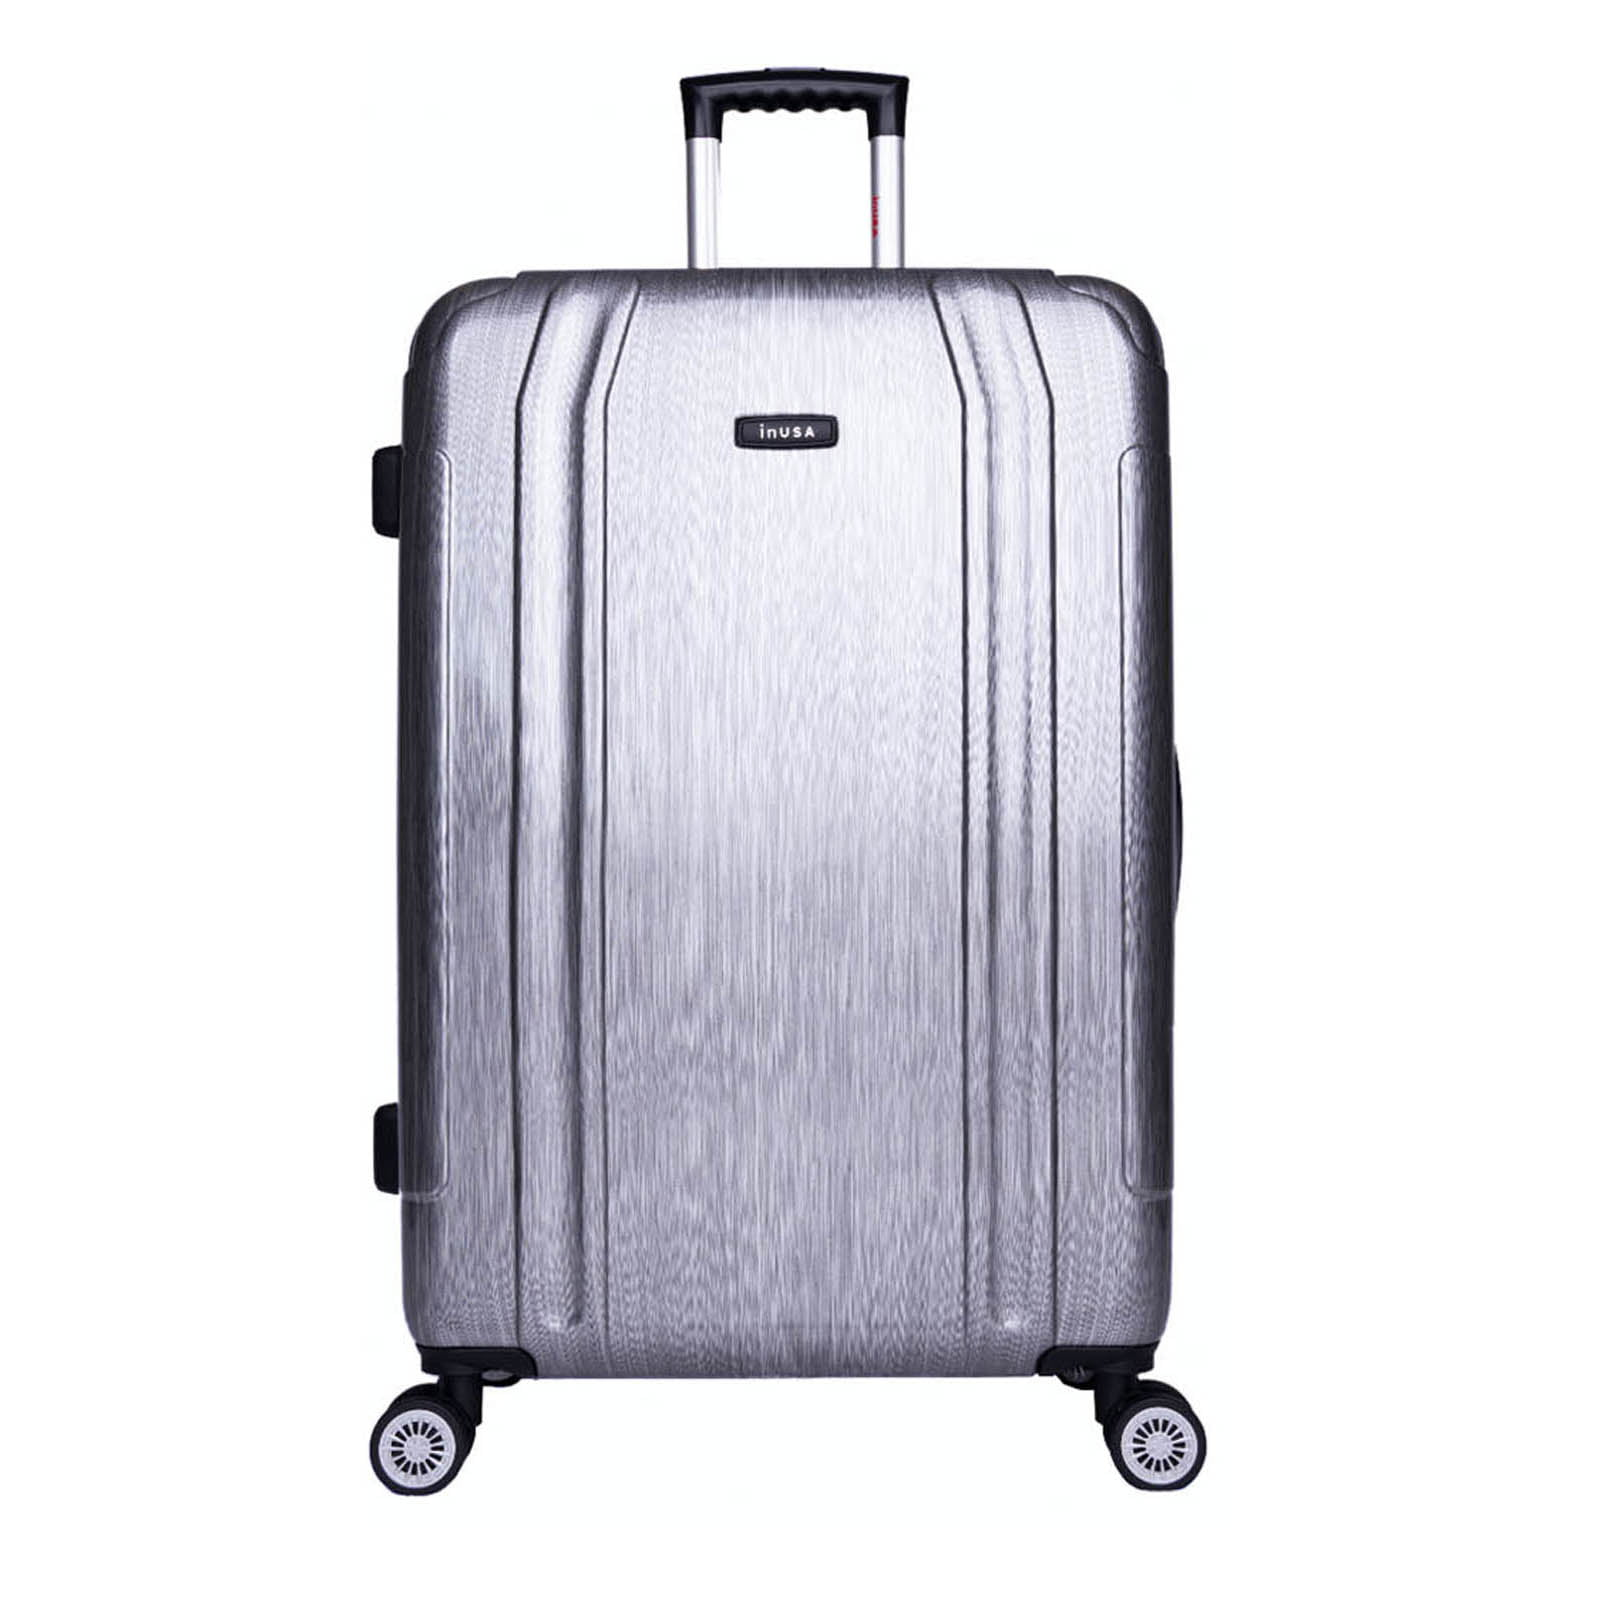 27 Inch Lightweight Luggage | Luggage And Suitcases